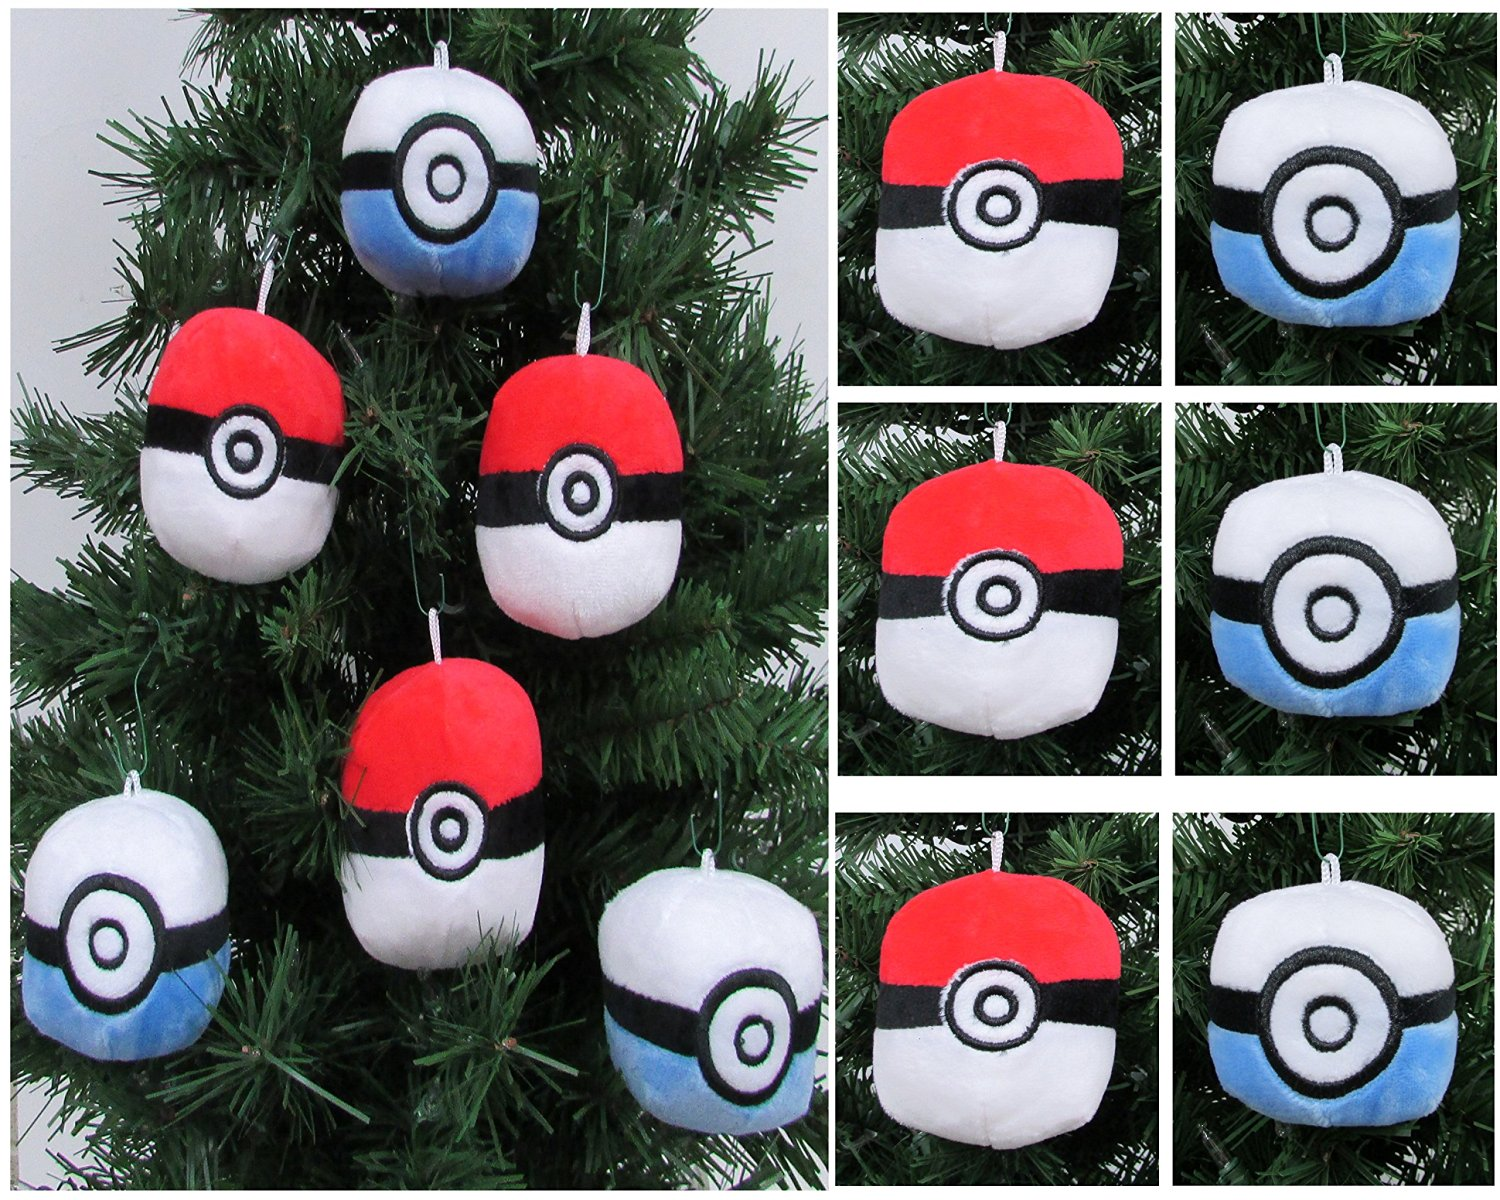 Buy Pokemon Catcher 6 Piece Poké Ball Plush Christmas Tree Ornament Set Featuring 3 Red Poké Balls And 3 Blue Poké Balls Averages 3 Round In Cheap Price On Alibaba Com